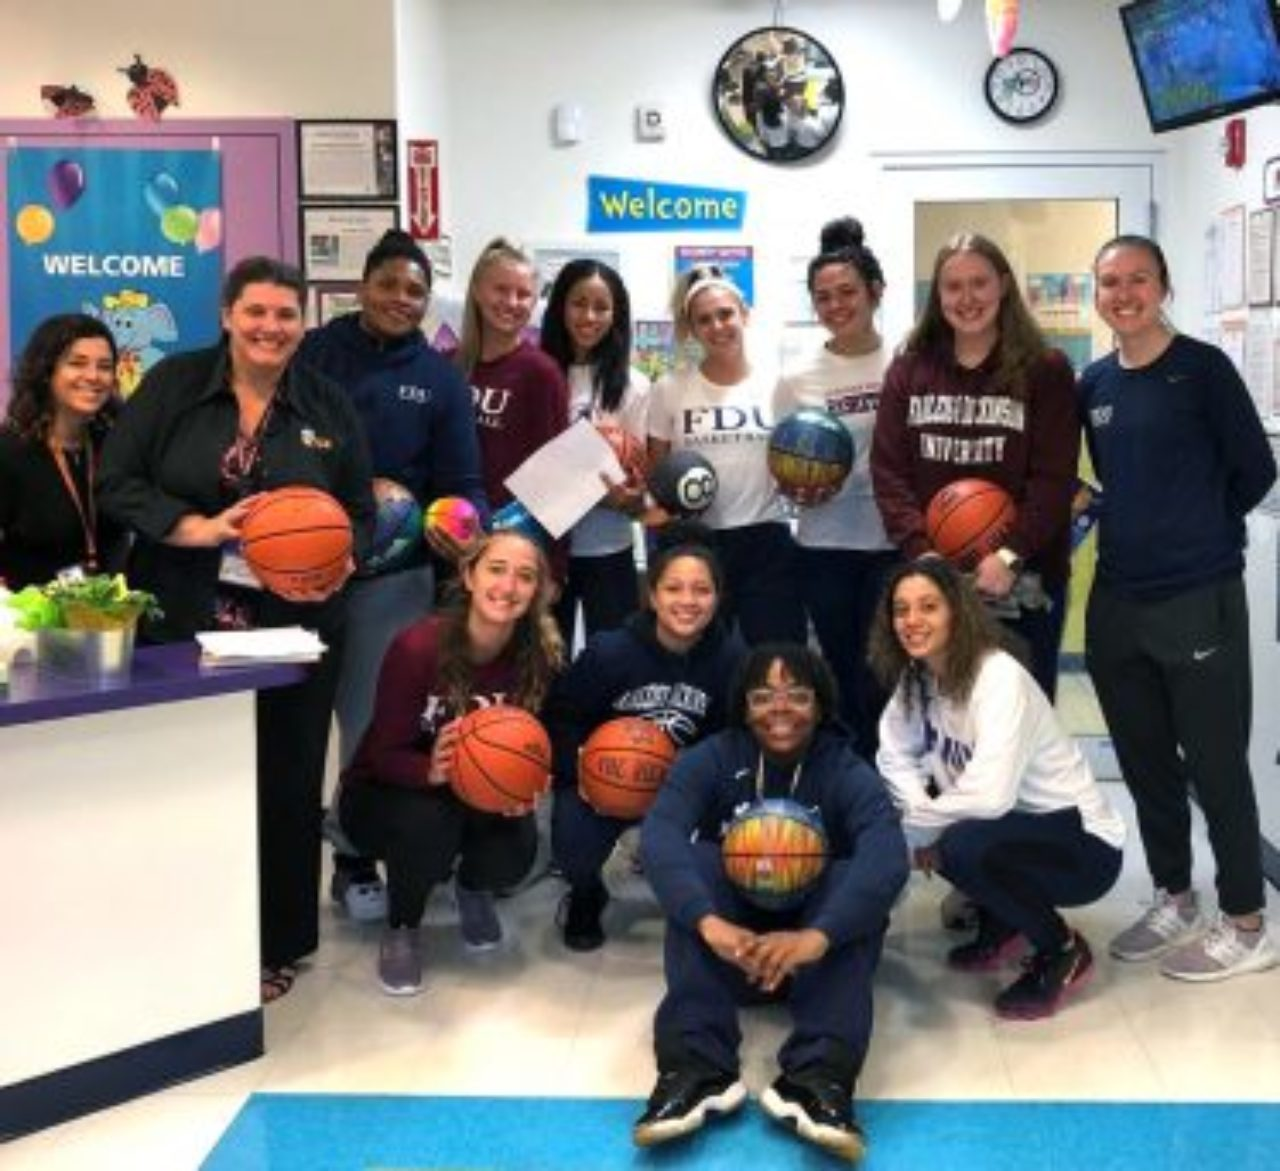 The Knights women's basketball team volunteers at the Learning Experience